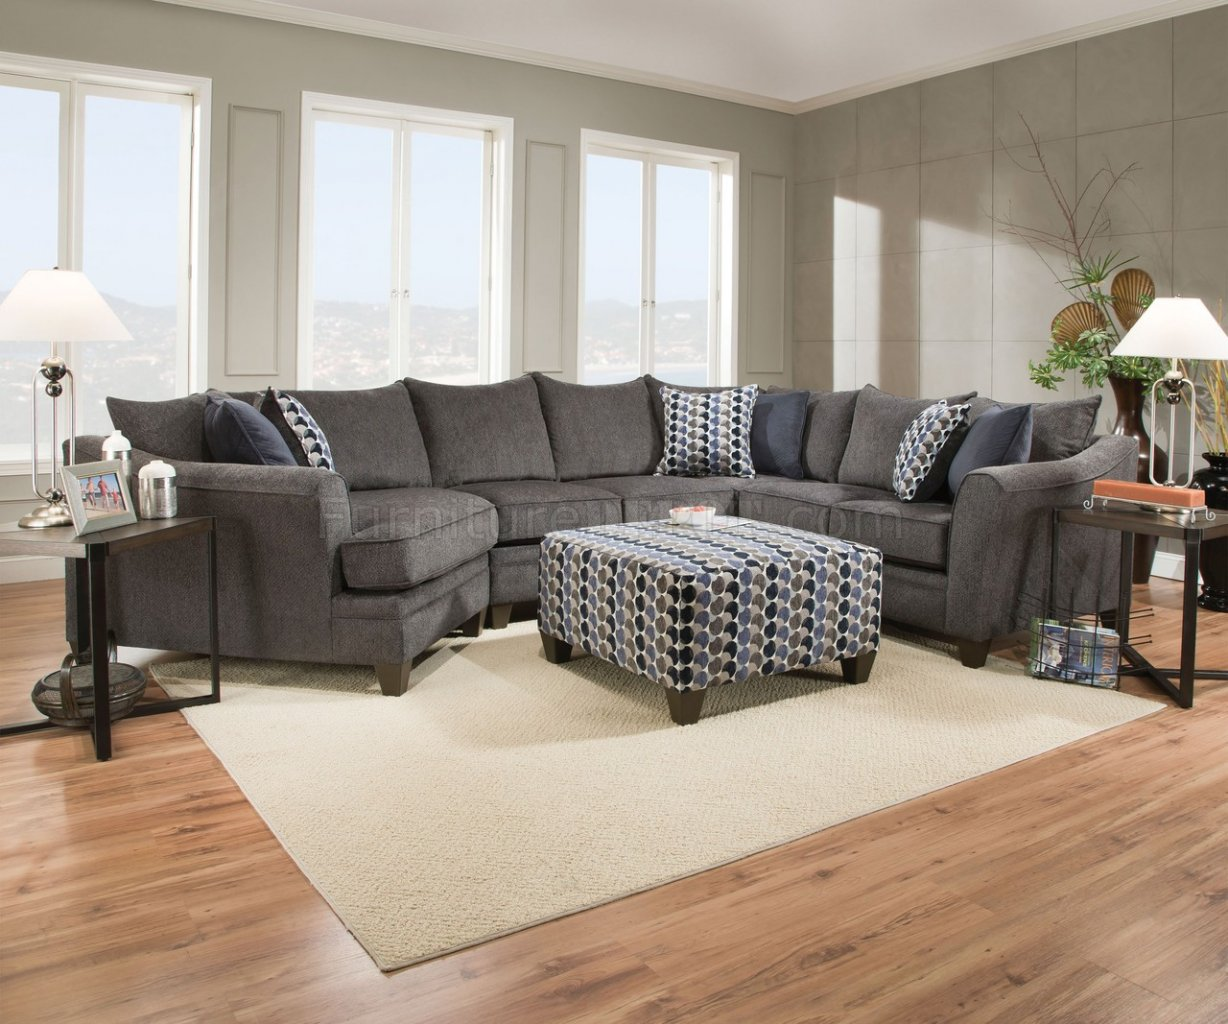 albany leather sofa how to remove pen ink from sectional 53835 in grey fabric by acme w options